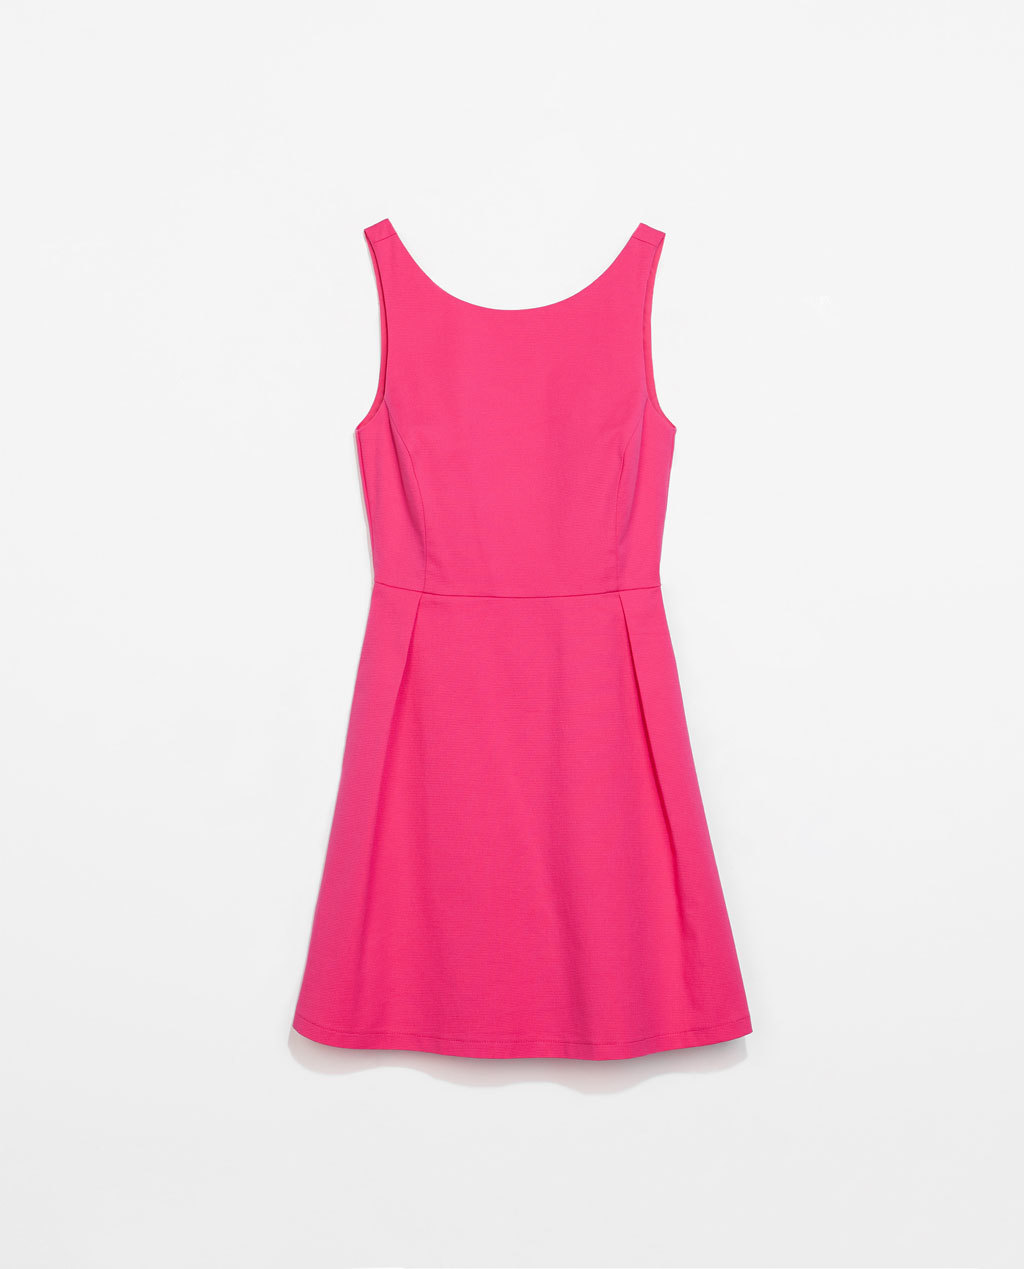 Pleated Dress - length: mid thigh; neckline: round neck; pattern: plain; sleeve style: sleeveless; back detail: back revealing; predominant colour: hot pink; occasions: casual, holiday, creative work; fit: fitted at waist & bust; style: fit & flare; fibres: cotton - stretch; hip detail: adds bulk at the hips; sleeve length: sleeveless; pattern type: fabric; texture group: other - light to midweight; trends: hot brights; season: s/s 2014